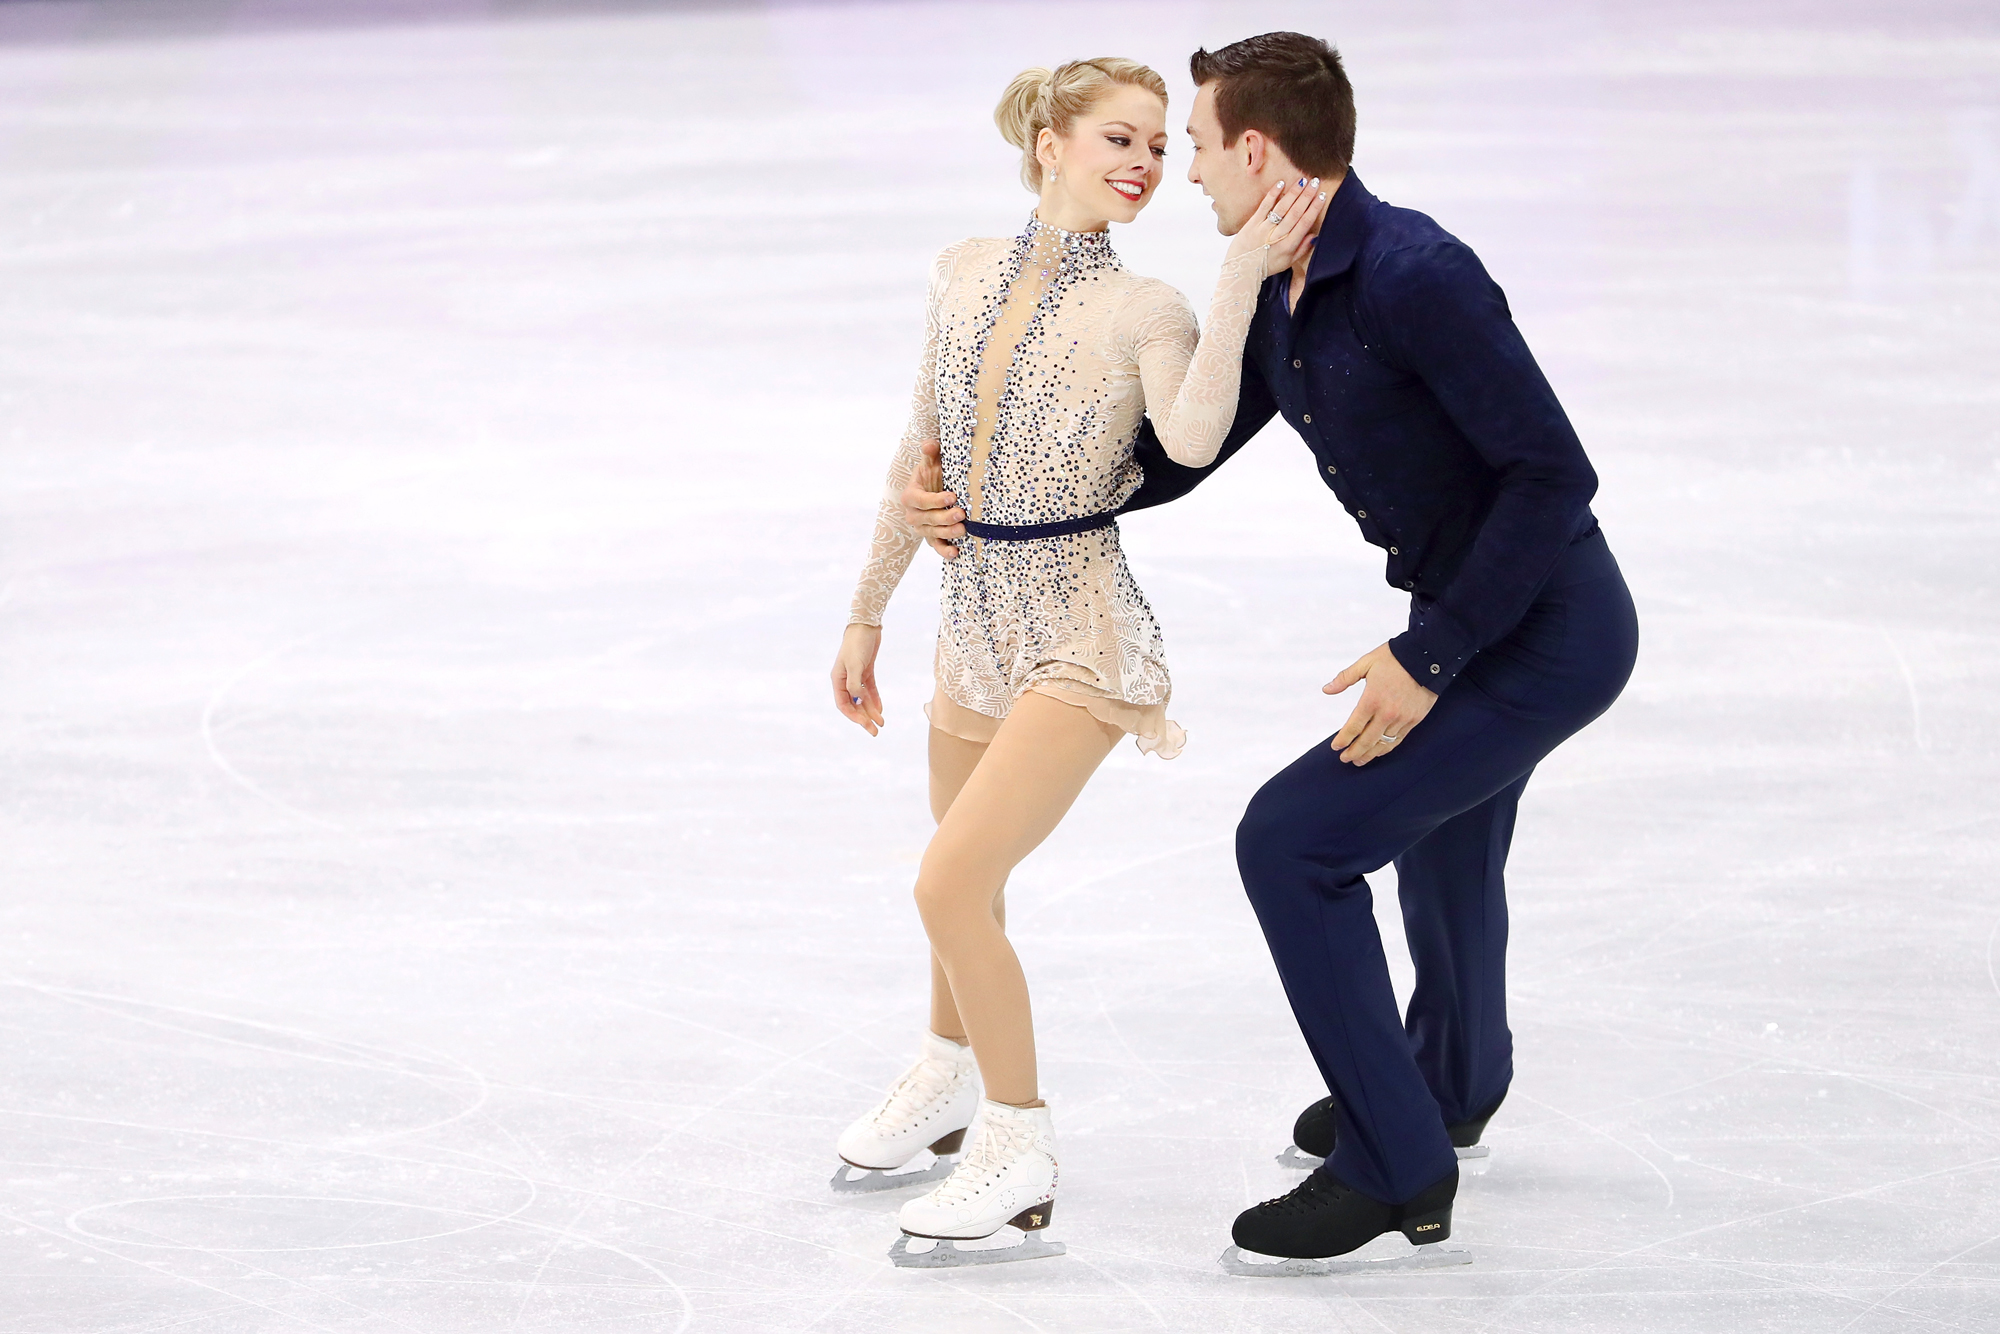 This Married Couple's Valentine's Day Plans Included Skating at the Olympics Together